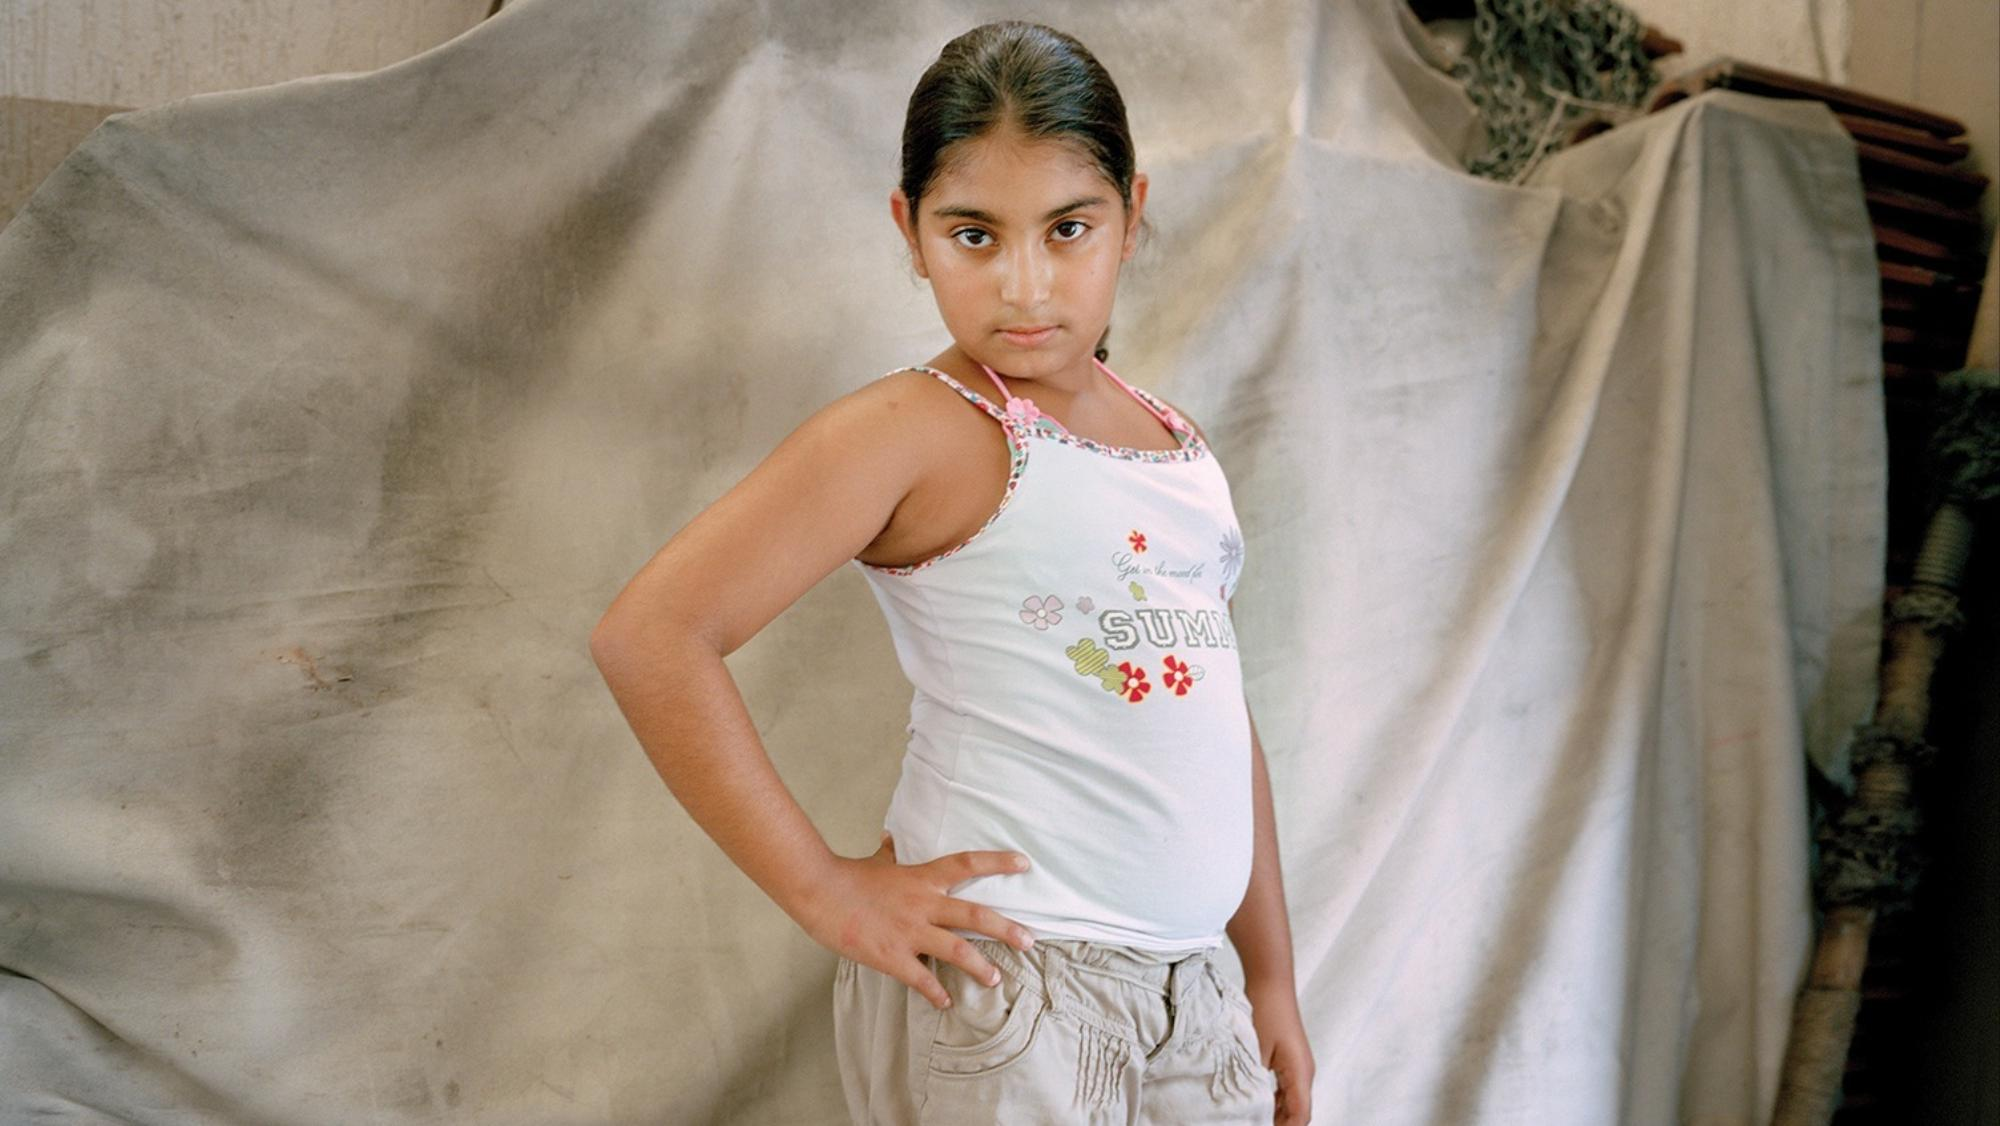 rania matar captures the universal awkwardness of coming of age